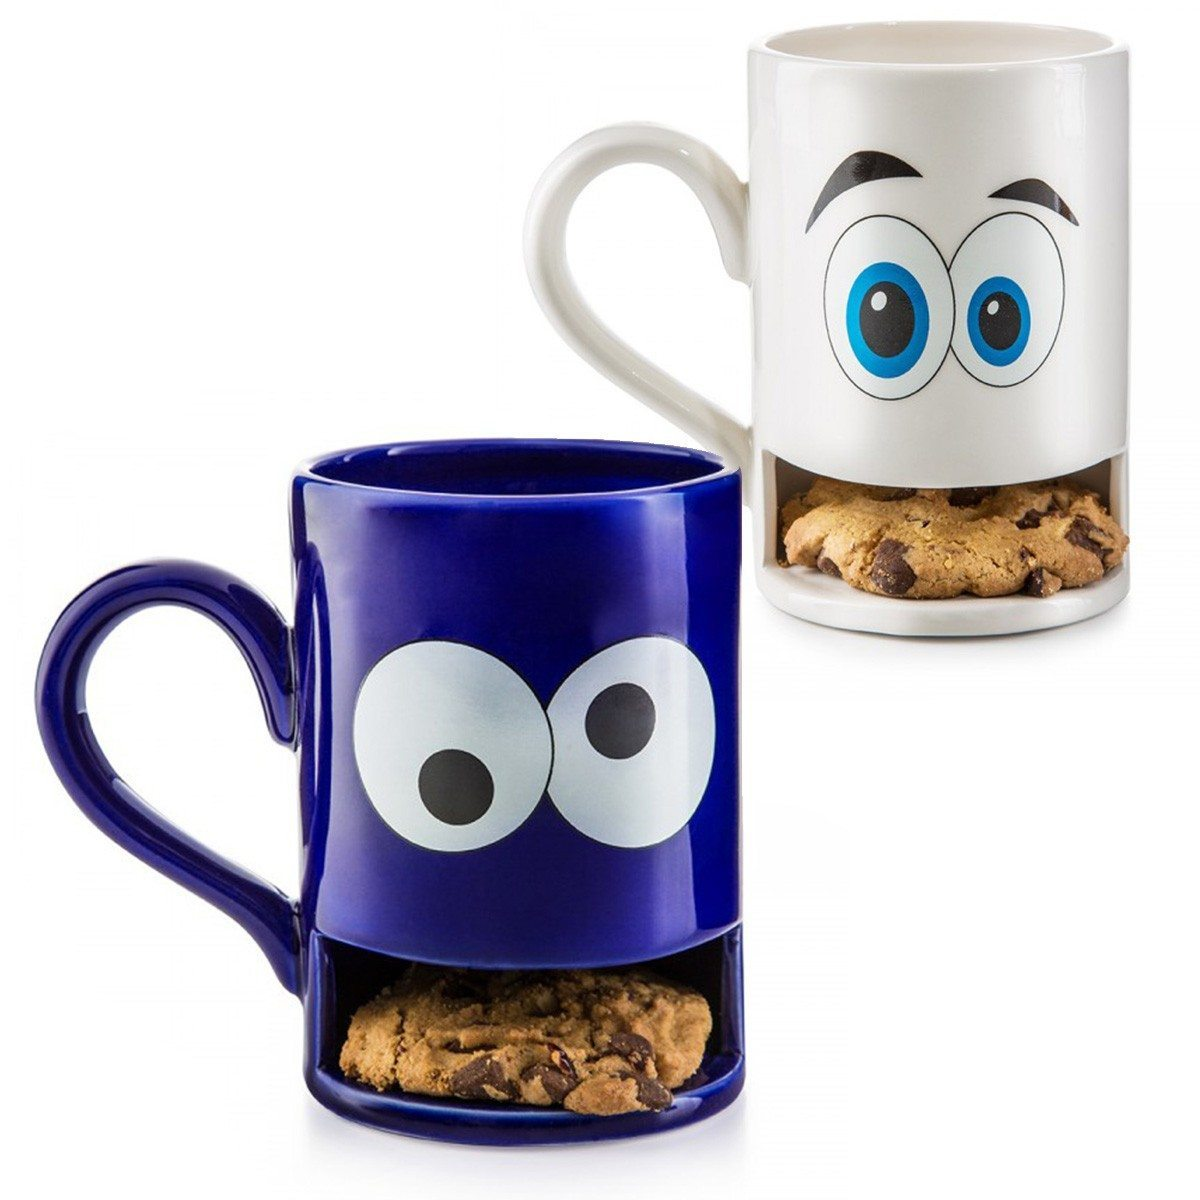 mug monsters tasse avec rangement pour biscuit. Black Bedroom Furniture Sets. Home Design Ideas